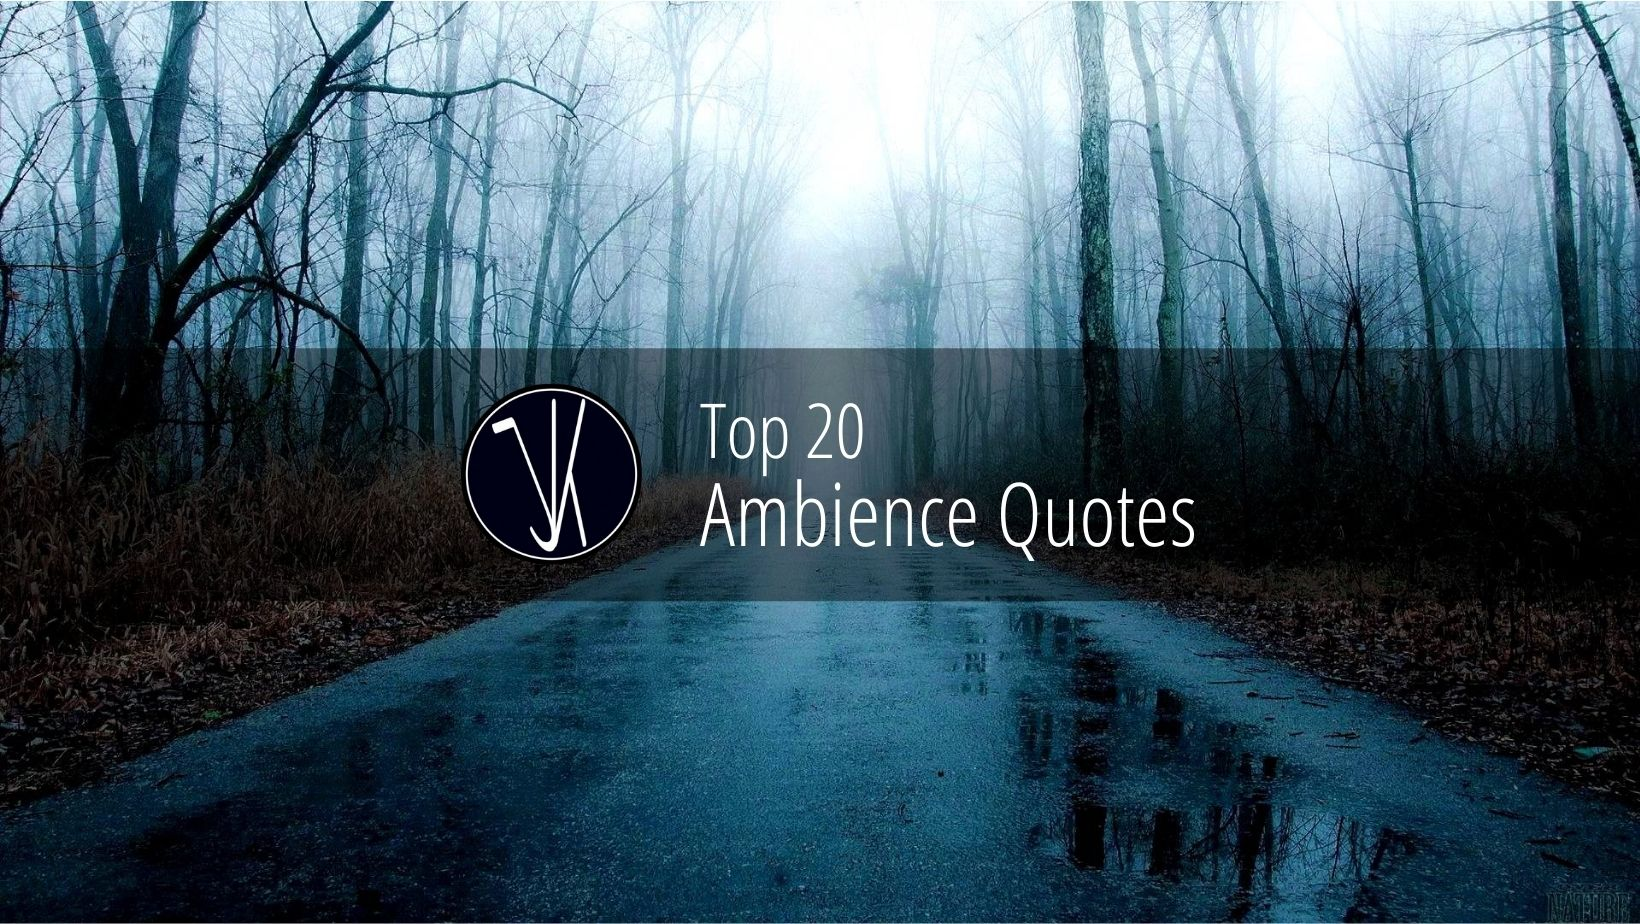 Top 20 Ambience Quotes